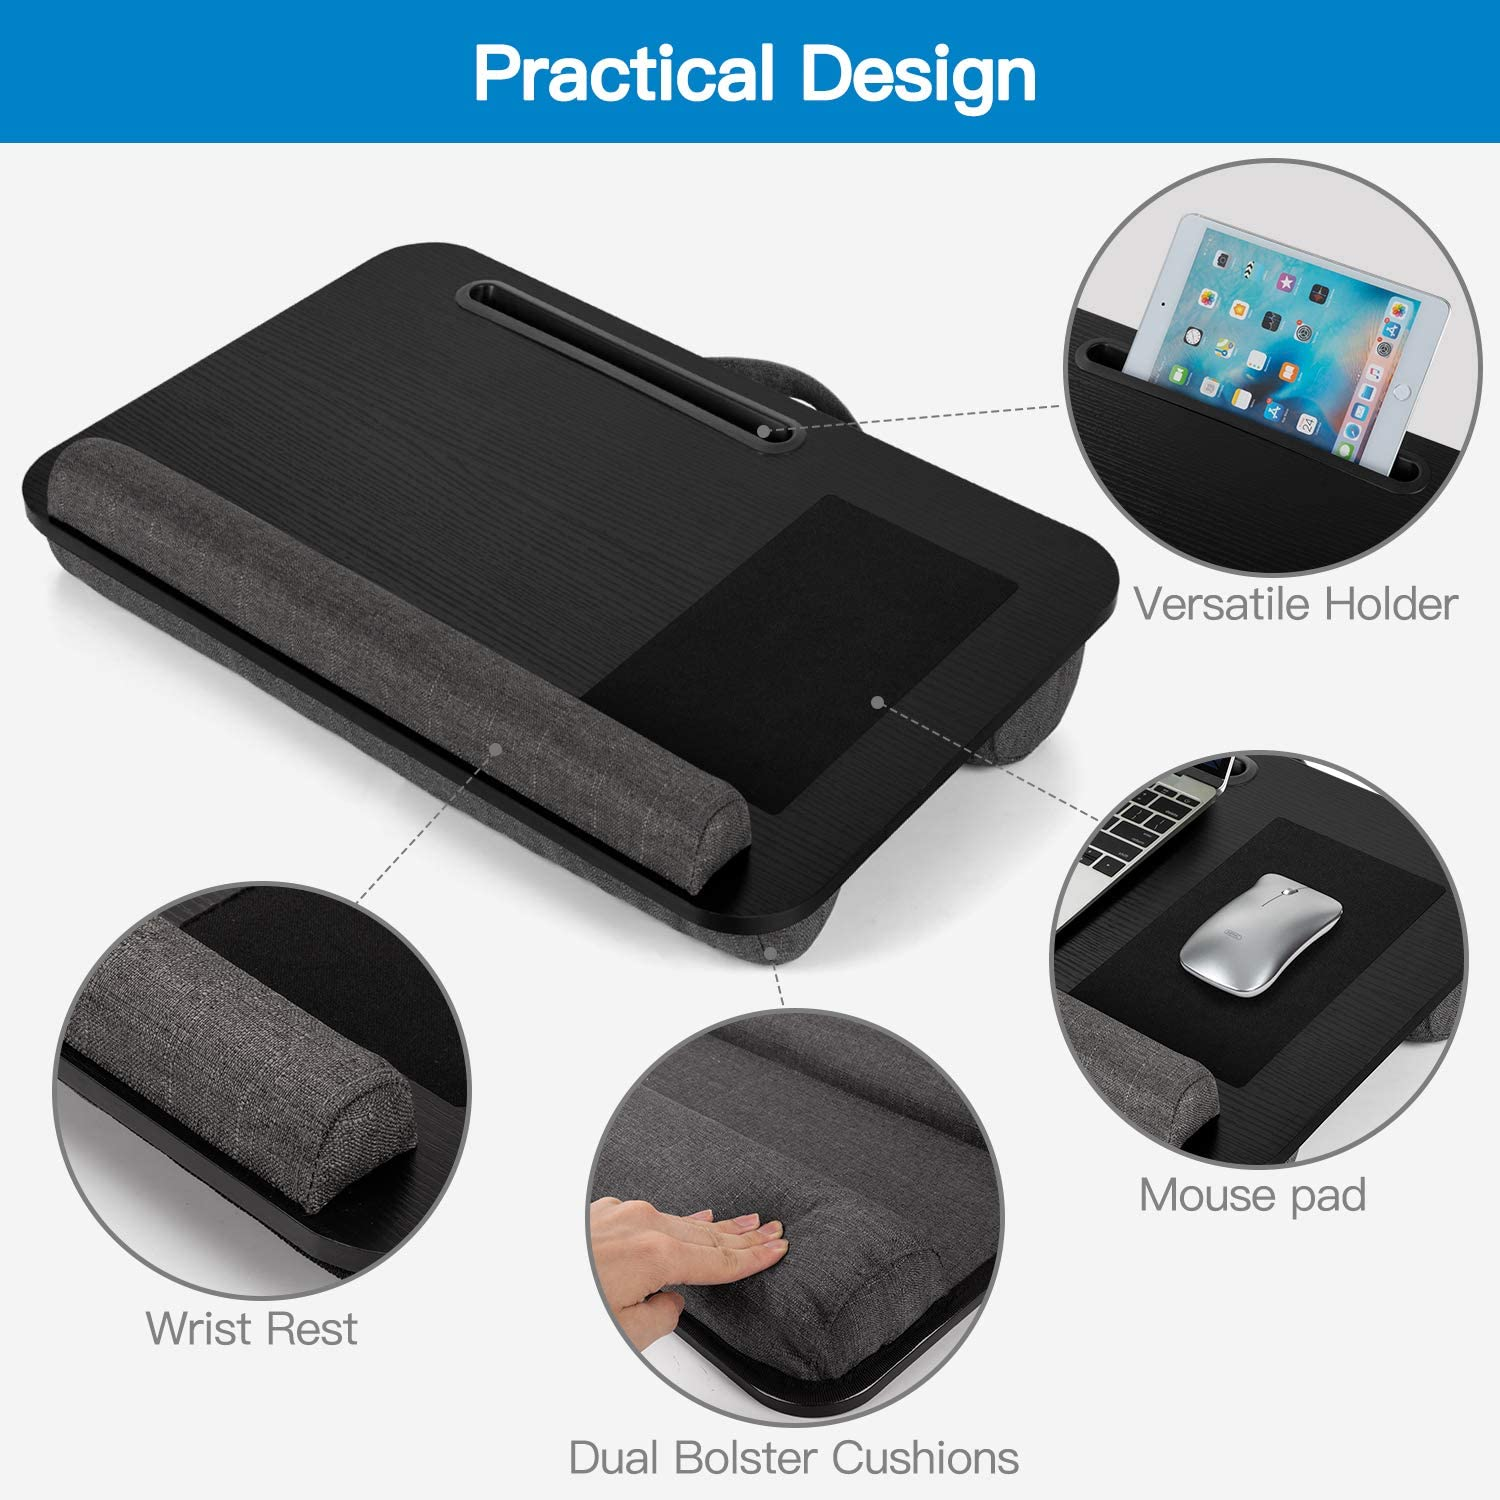 Wrist Rest /& Built-in Mouse Pad AMERIERGO Lap Desk Multifunctional Slot for Tablet Fits Up to 17 Inch Laptop Lap Desk with Dual Cushion Portable Laptop Stand for Sofa /& Bed Pen /& Phone